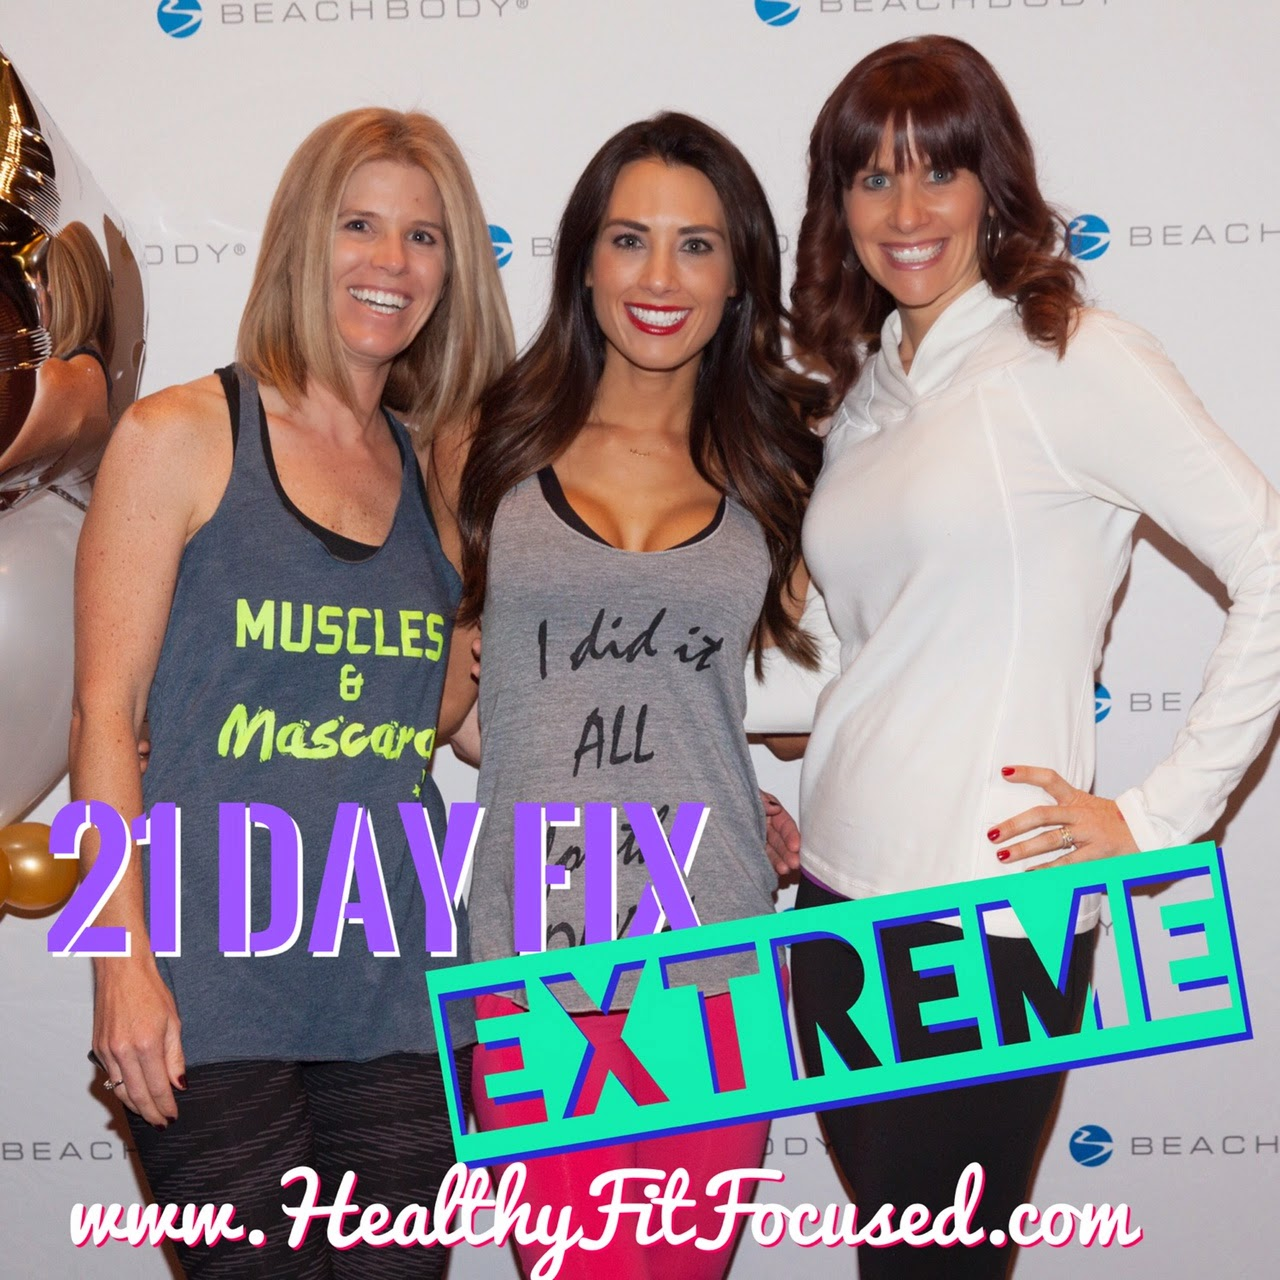 Which Fix For You?, 21 Day Fix, 21 Day Fix Extreme, www.HealthyFitFocused.com , autumn calabrese